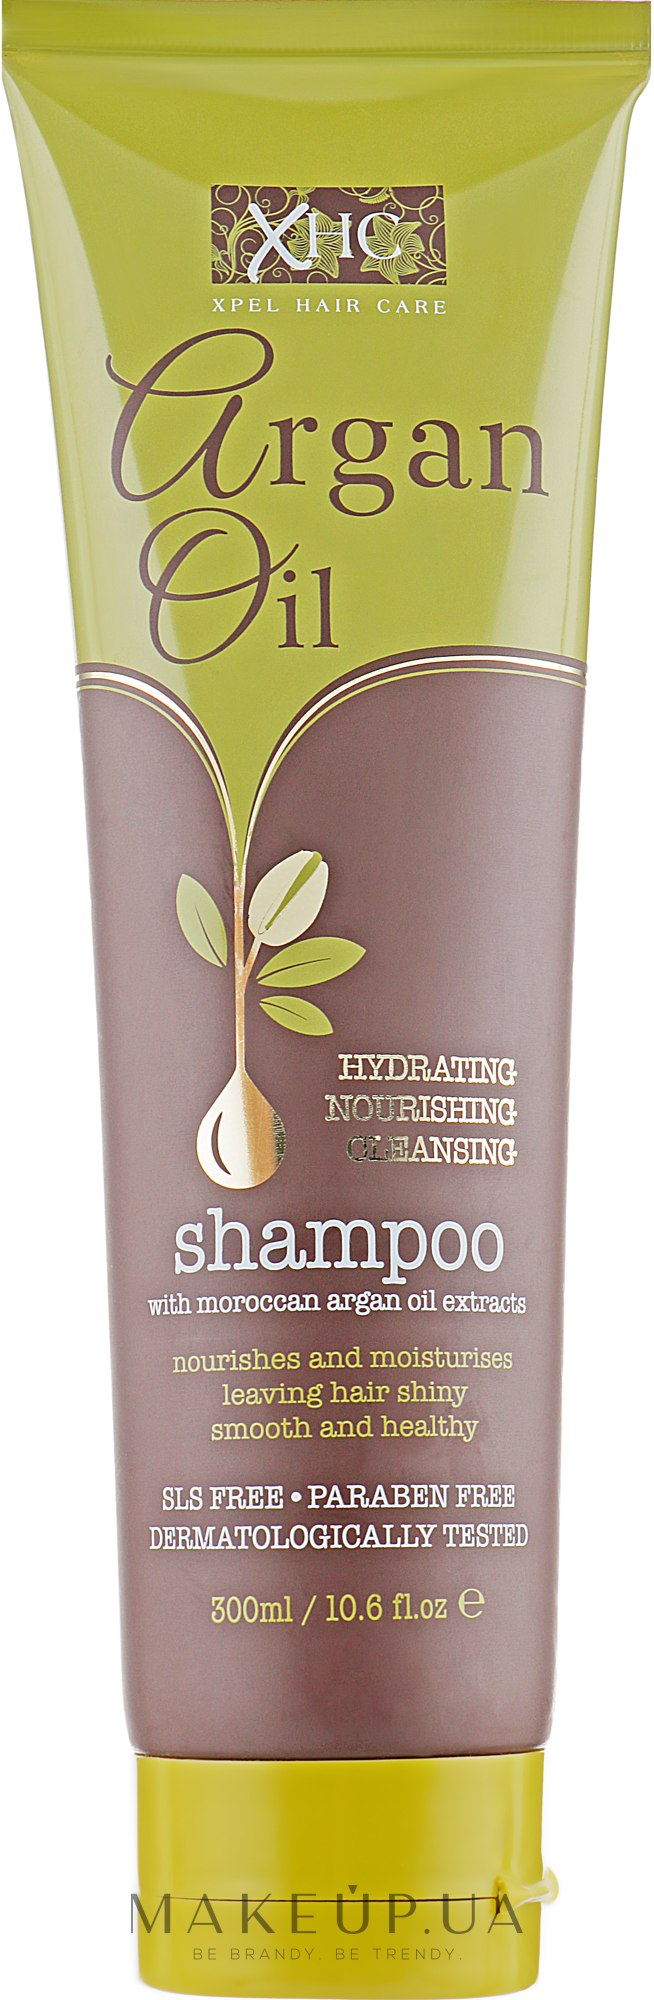 Шампунь для волос - Xpel Marketing Ltd Argan Oil Shampoo — фото 300ml